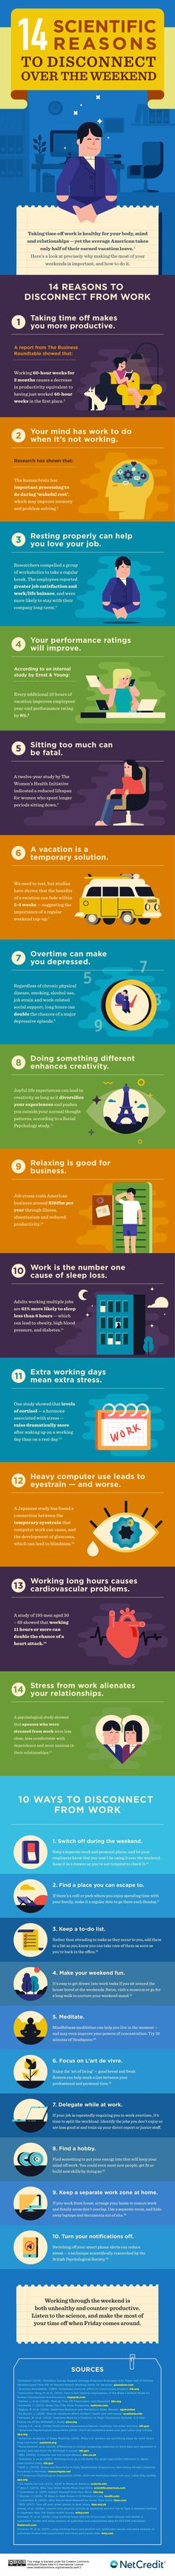 14 Scientific Reasons to Disconnect Over the Weekend (Infographic)